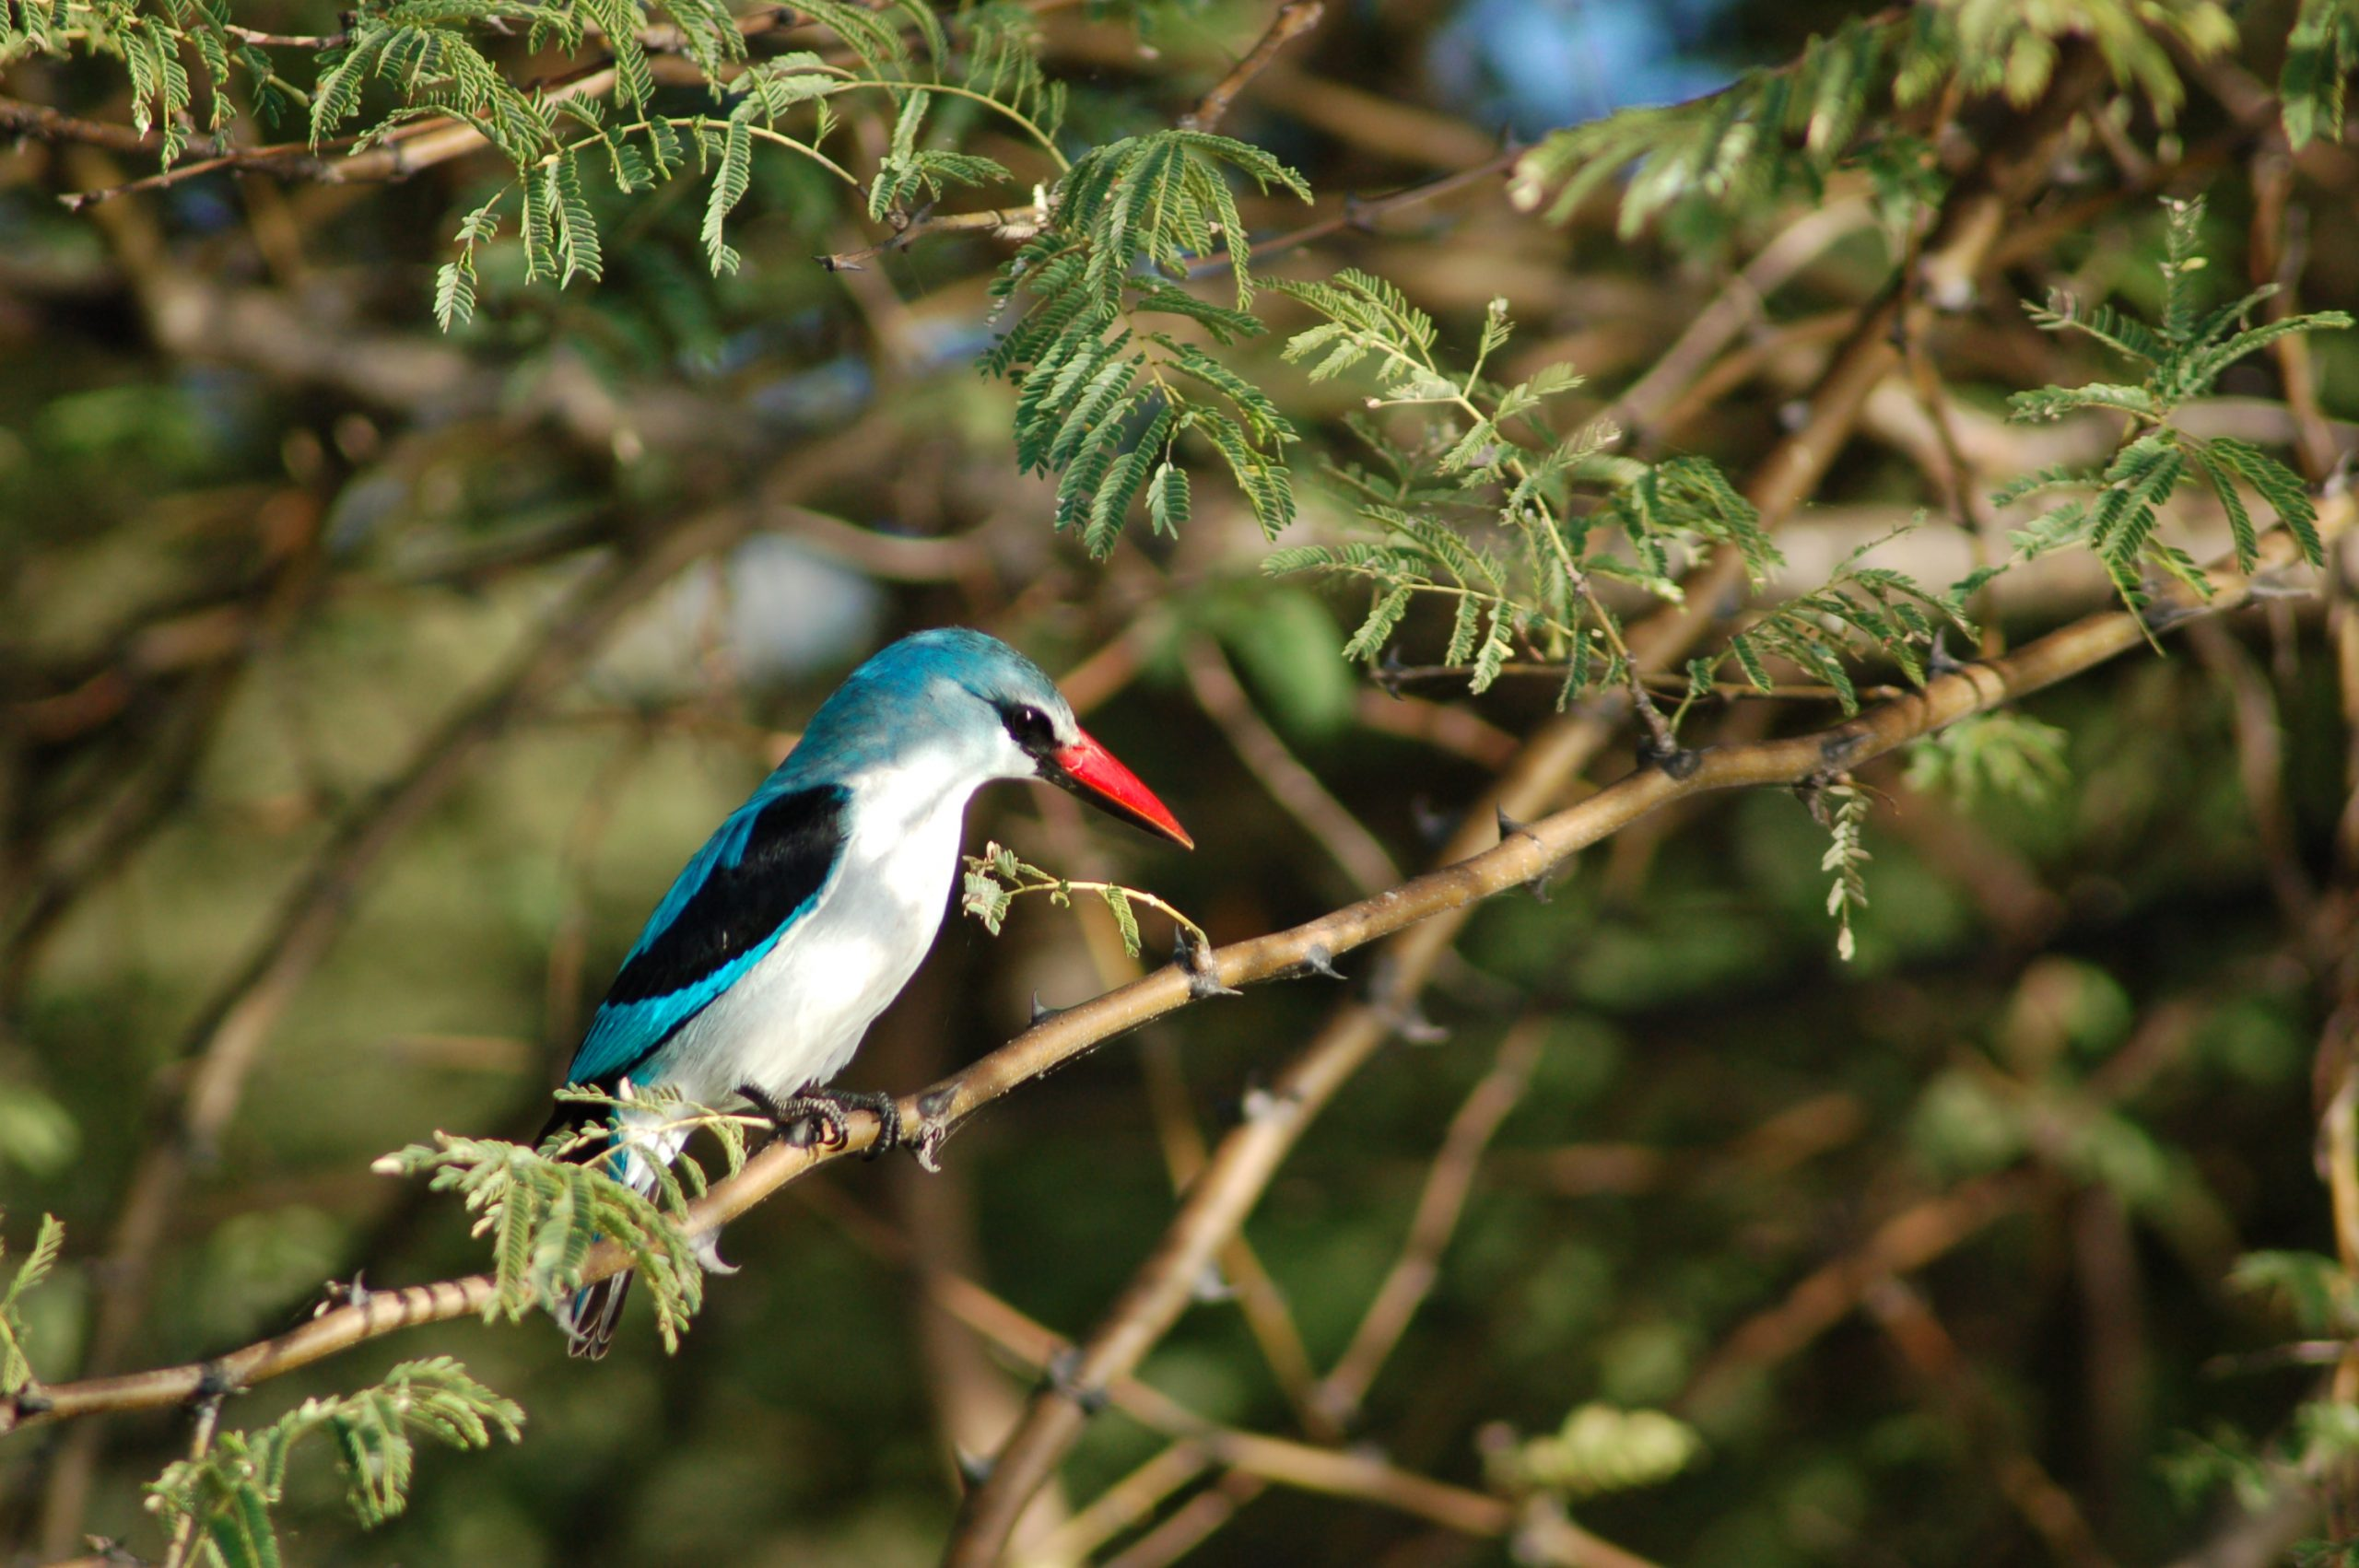 The Woodland Kingfisher is not considered threatened at present, but is subject to some loss of numbers through accidents in built-up areas while on migration.